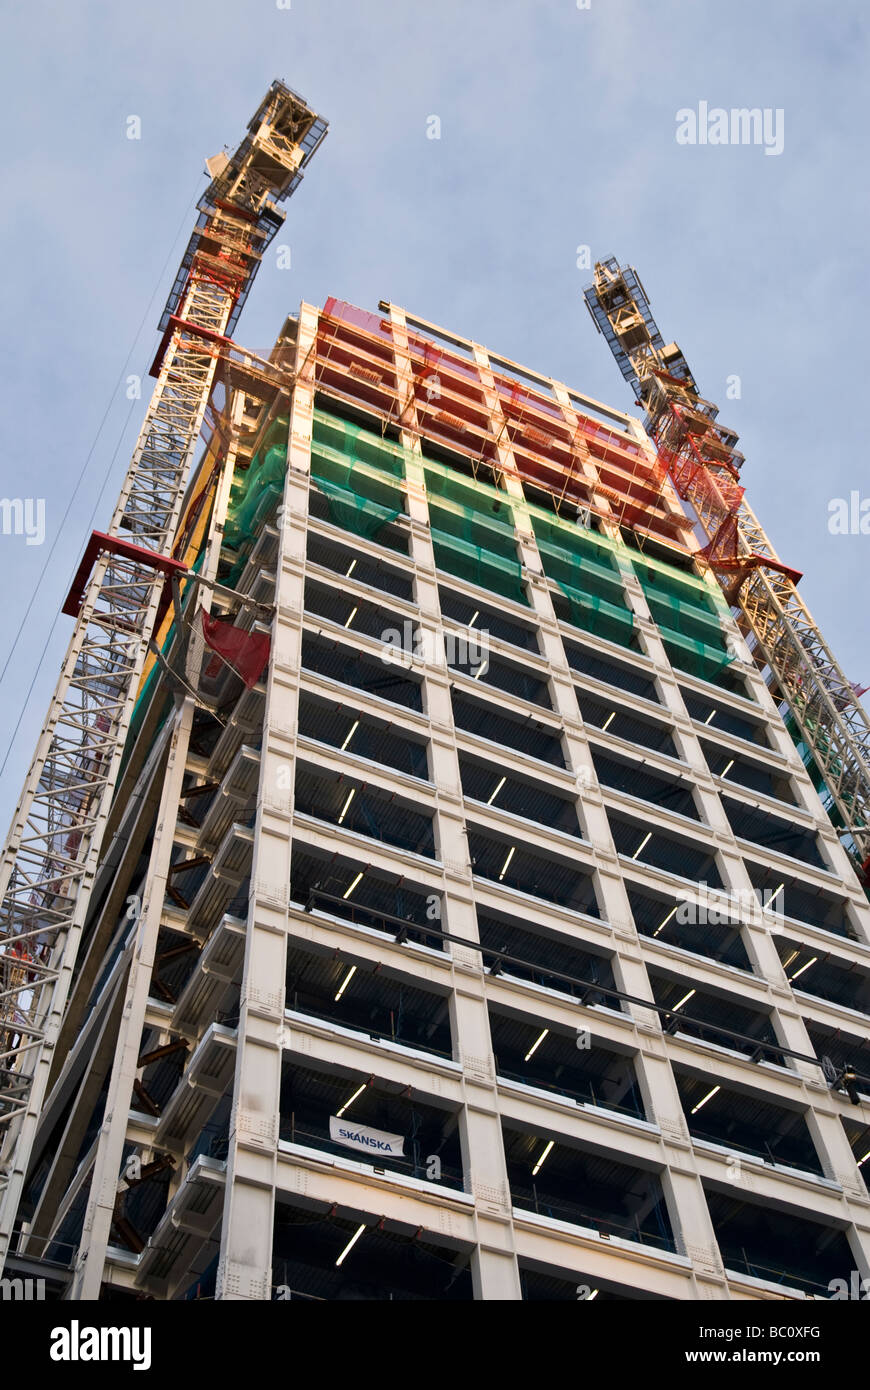 CONSTRUCTION OF TALL BUILDING IN THE CITY OF LONDON - Stock Image